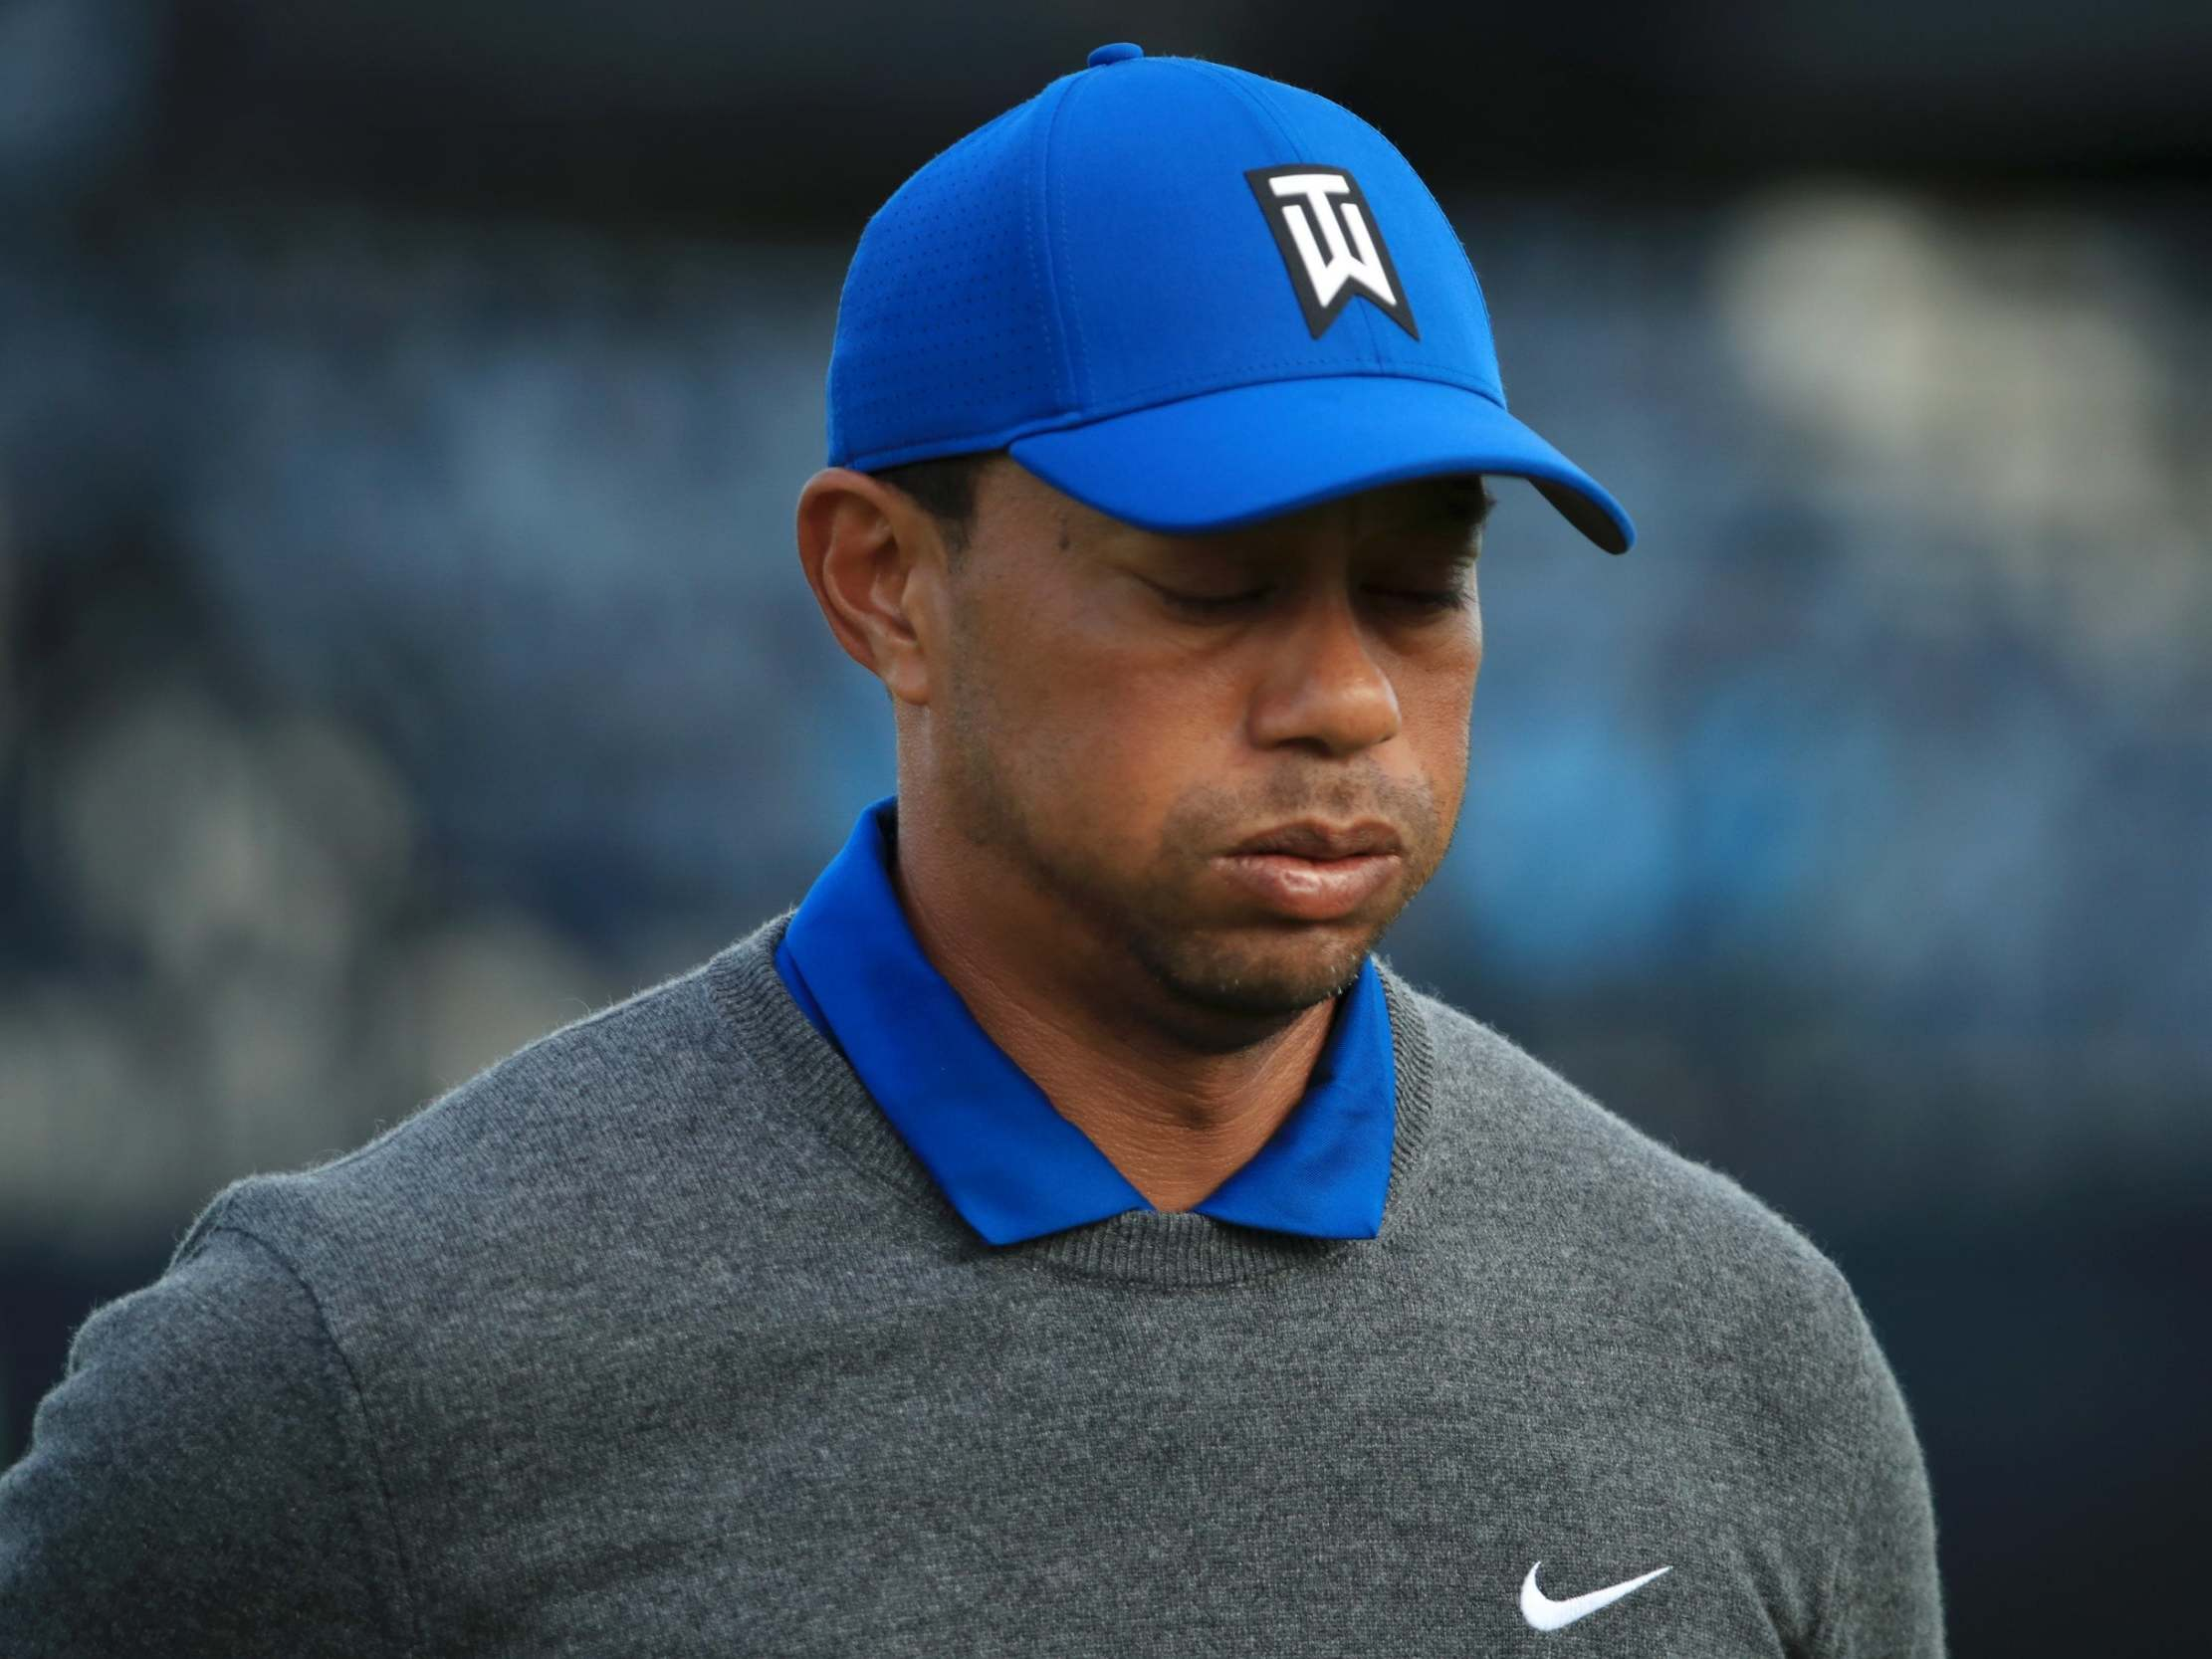 The Open 2019: Tiger Woods heads straight to physio after admitting 'I'm sore' following opening round